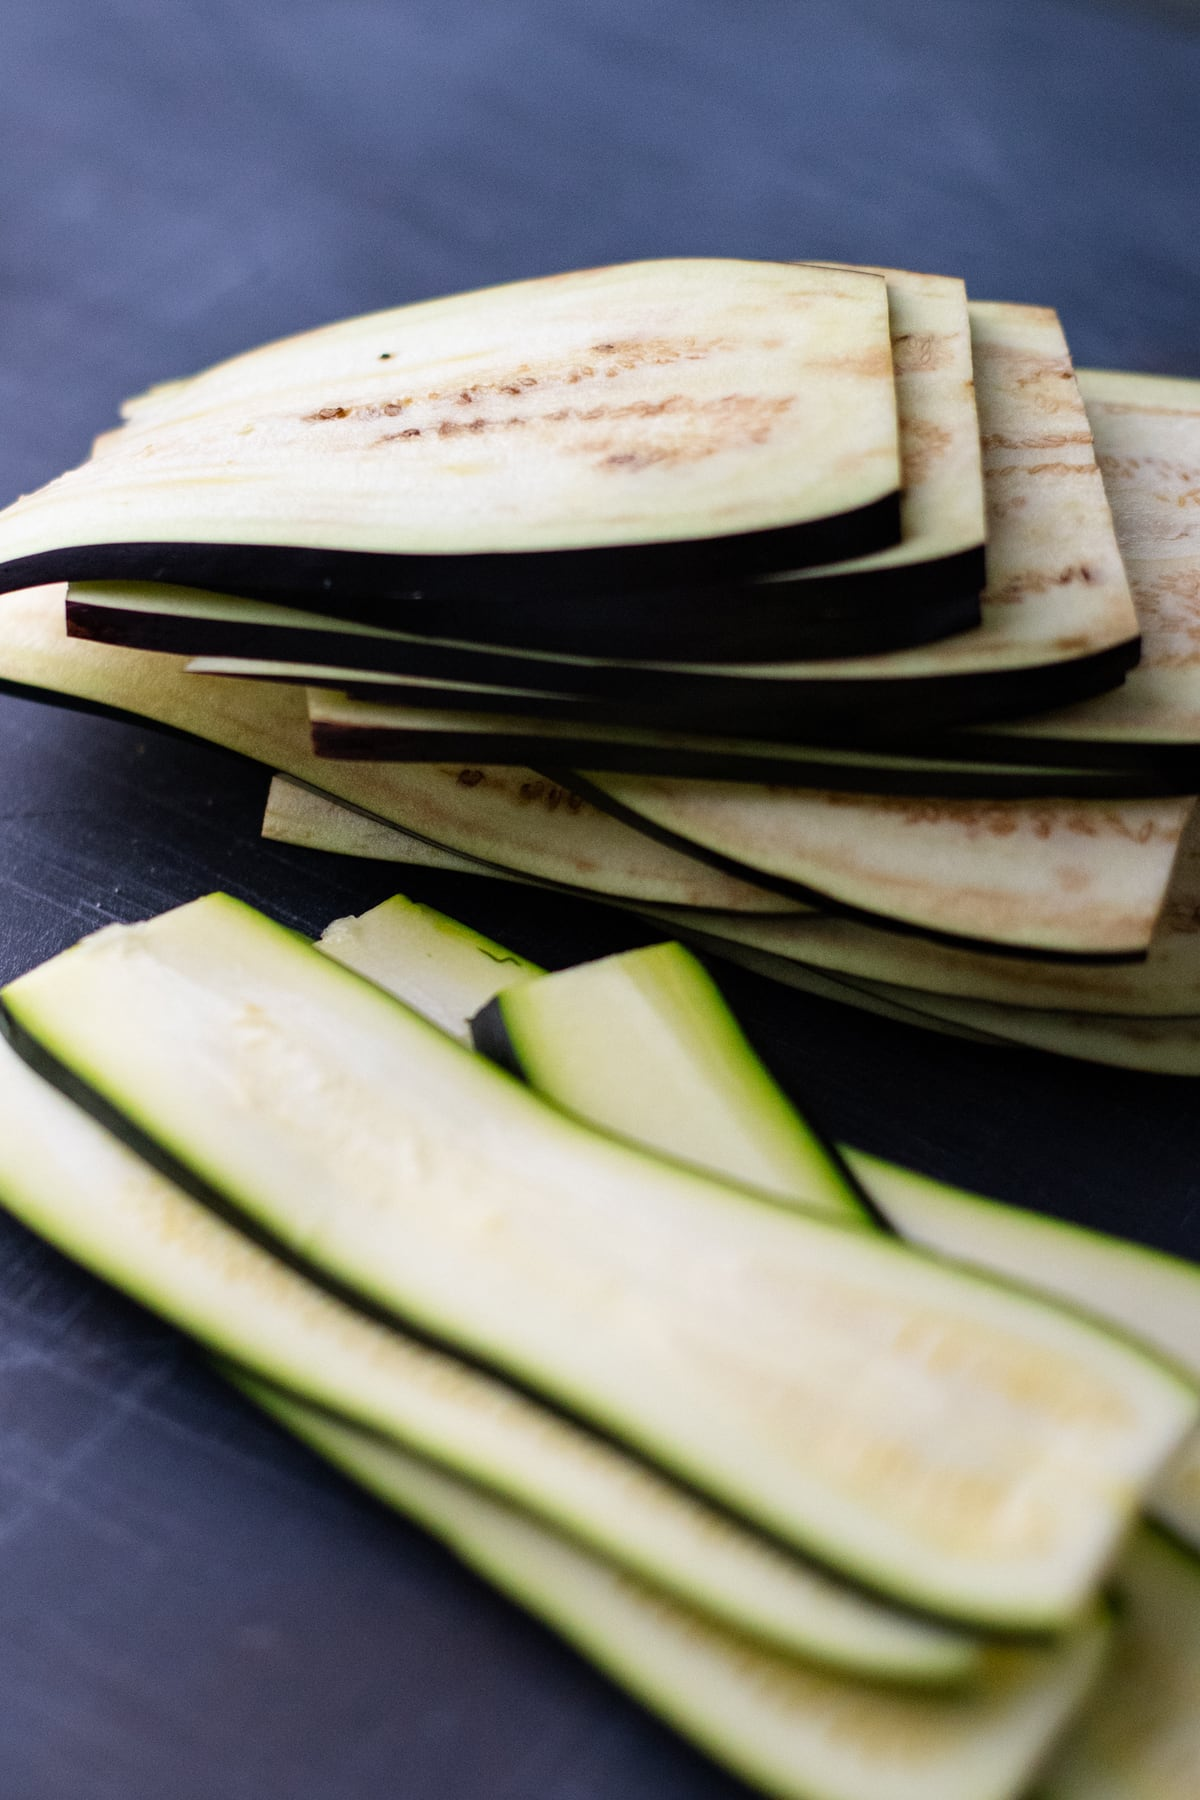 Eggplant and zucchini cut into thin slices on dark gray background.